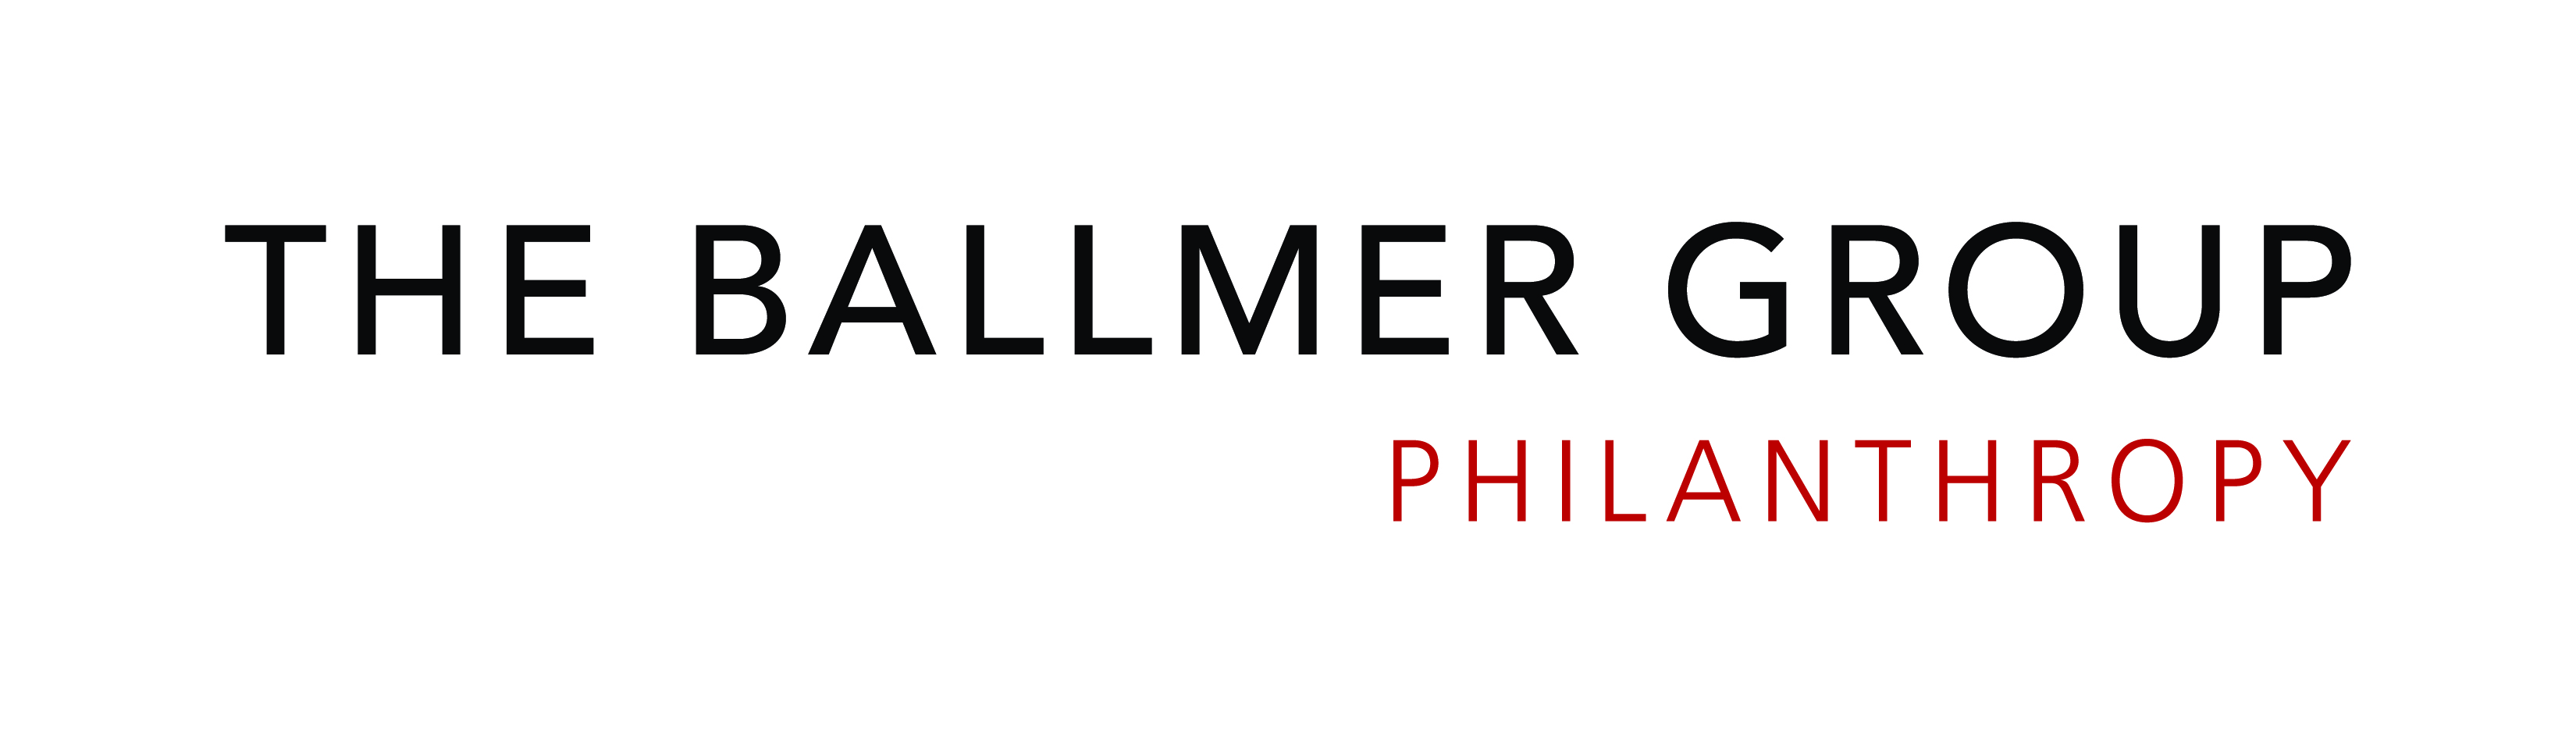 Ballmer Group Philanthropy